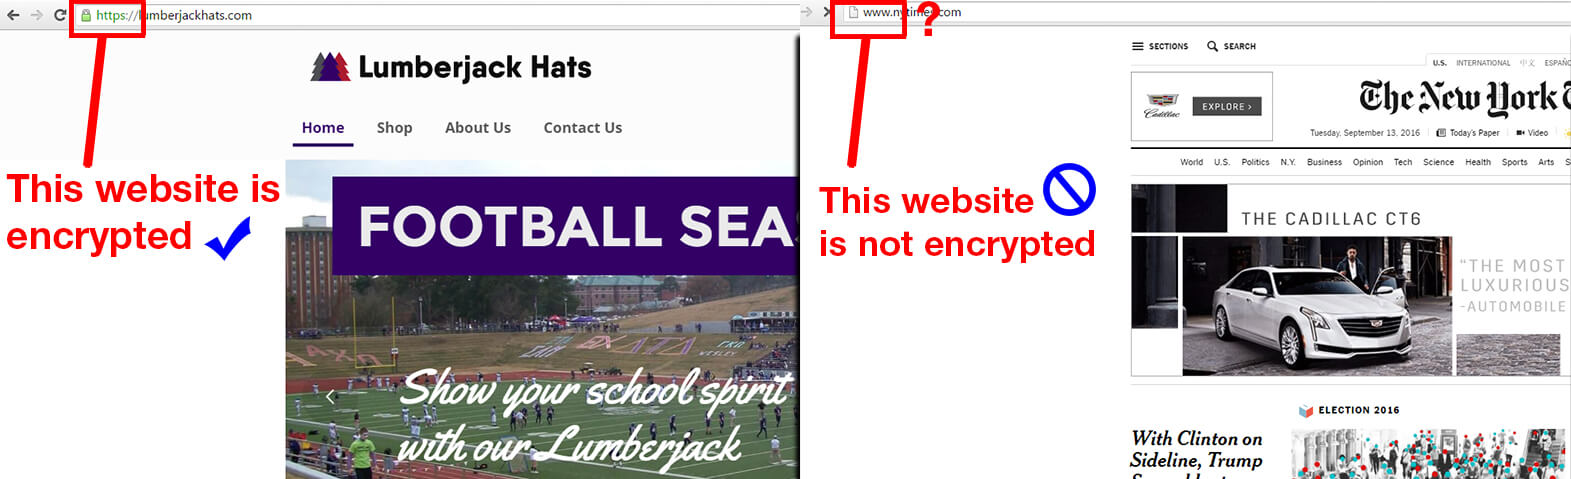 encrypted website versus unencrypted website